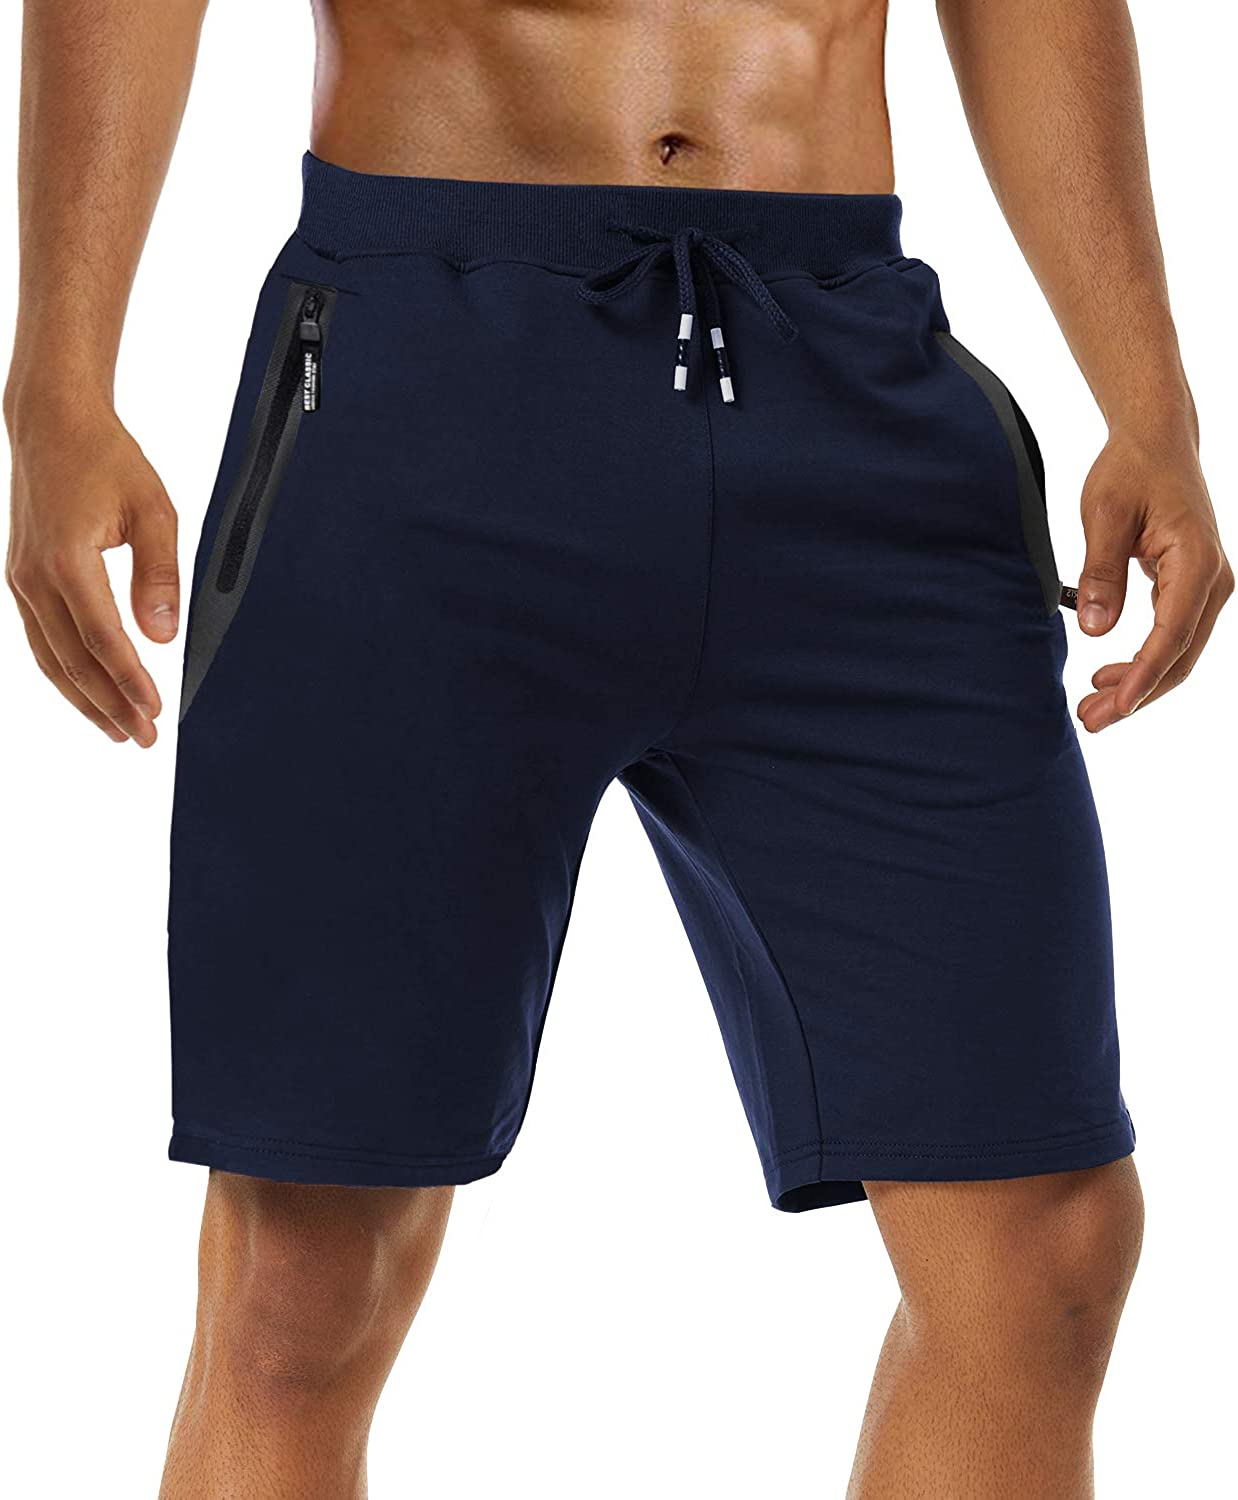 FASKUNOIE Men's Casual Shorts Elastic Gym Workout Cotton Jogger Shorts with Zipper Pockets